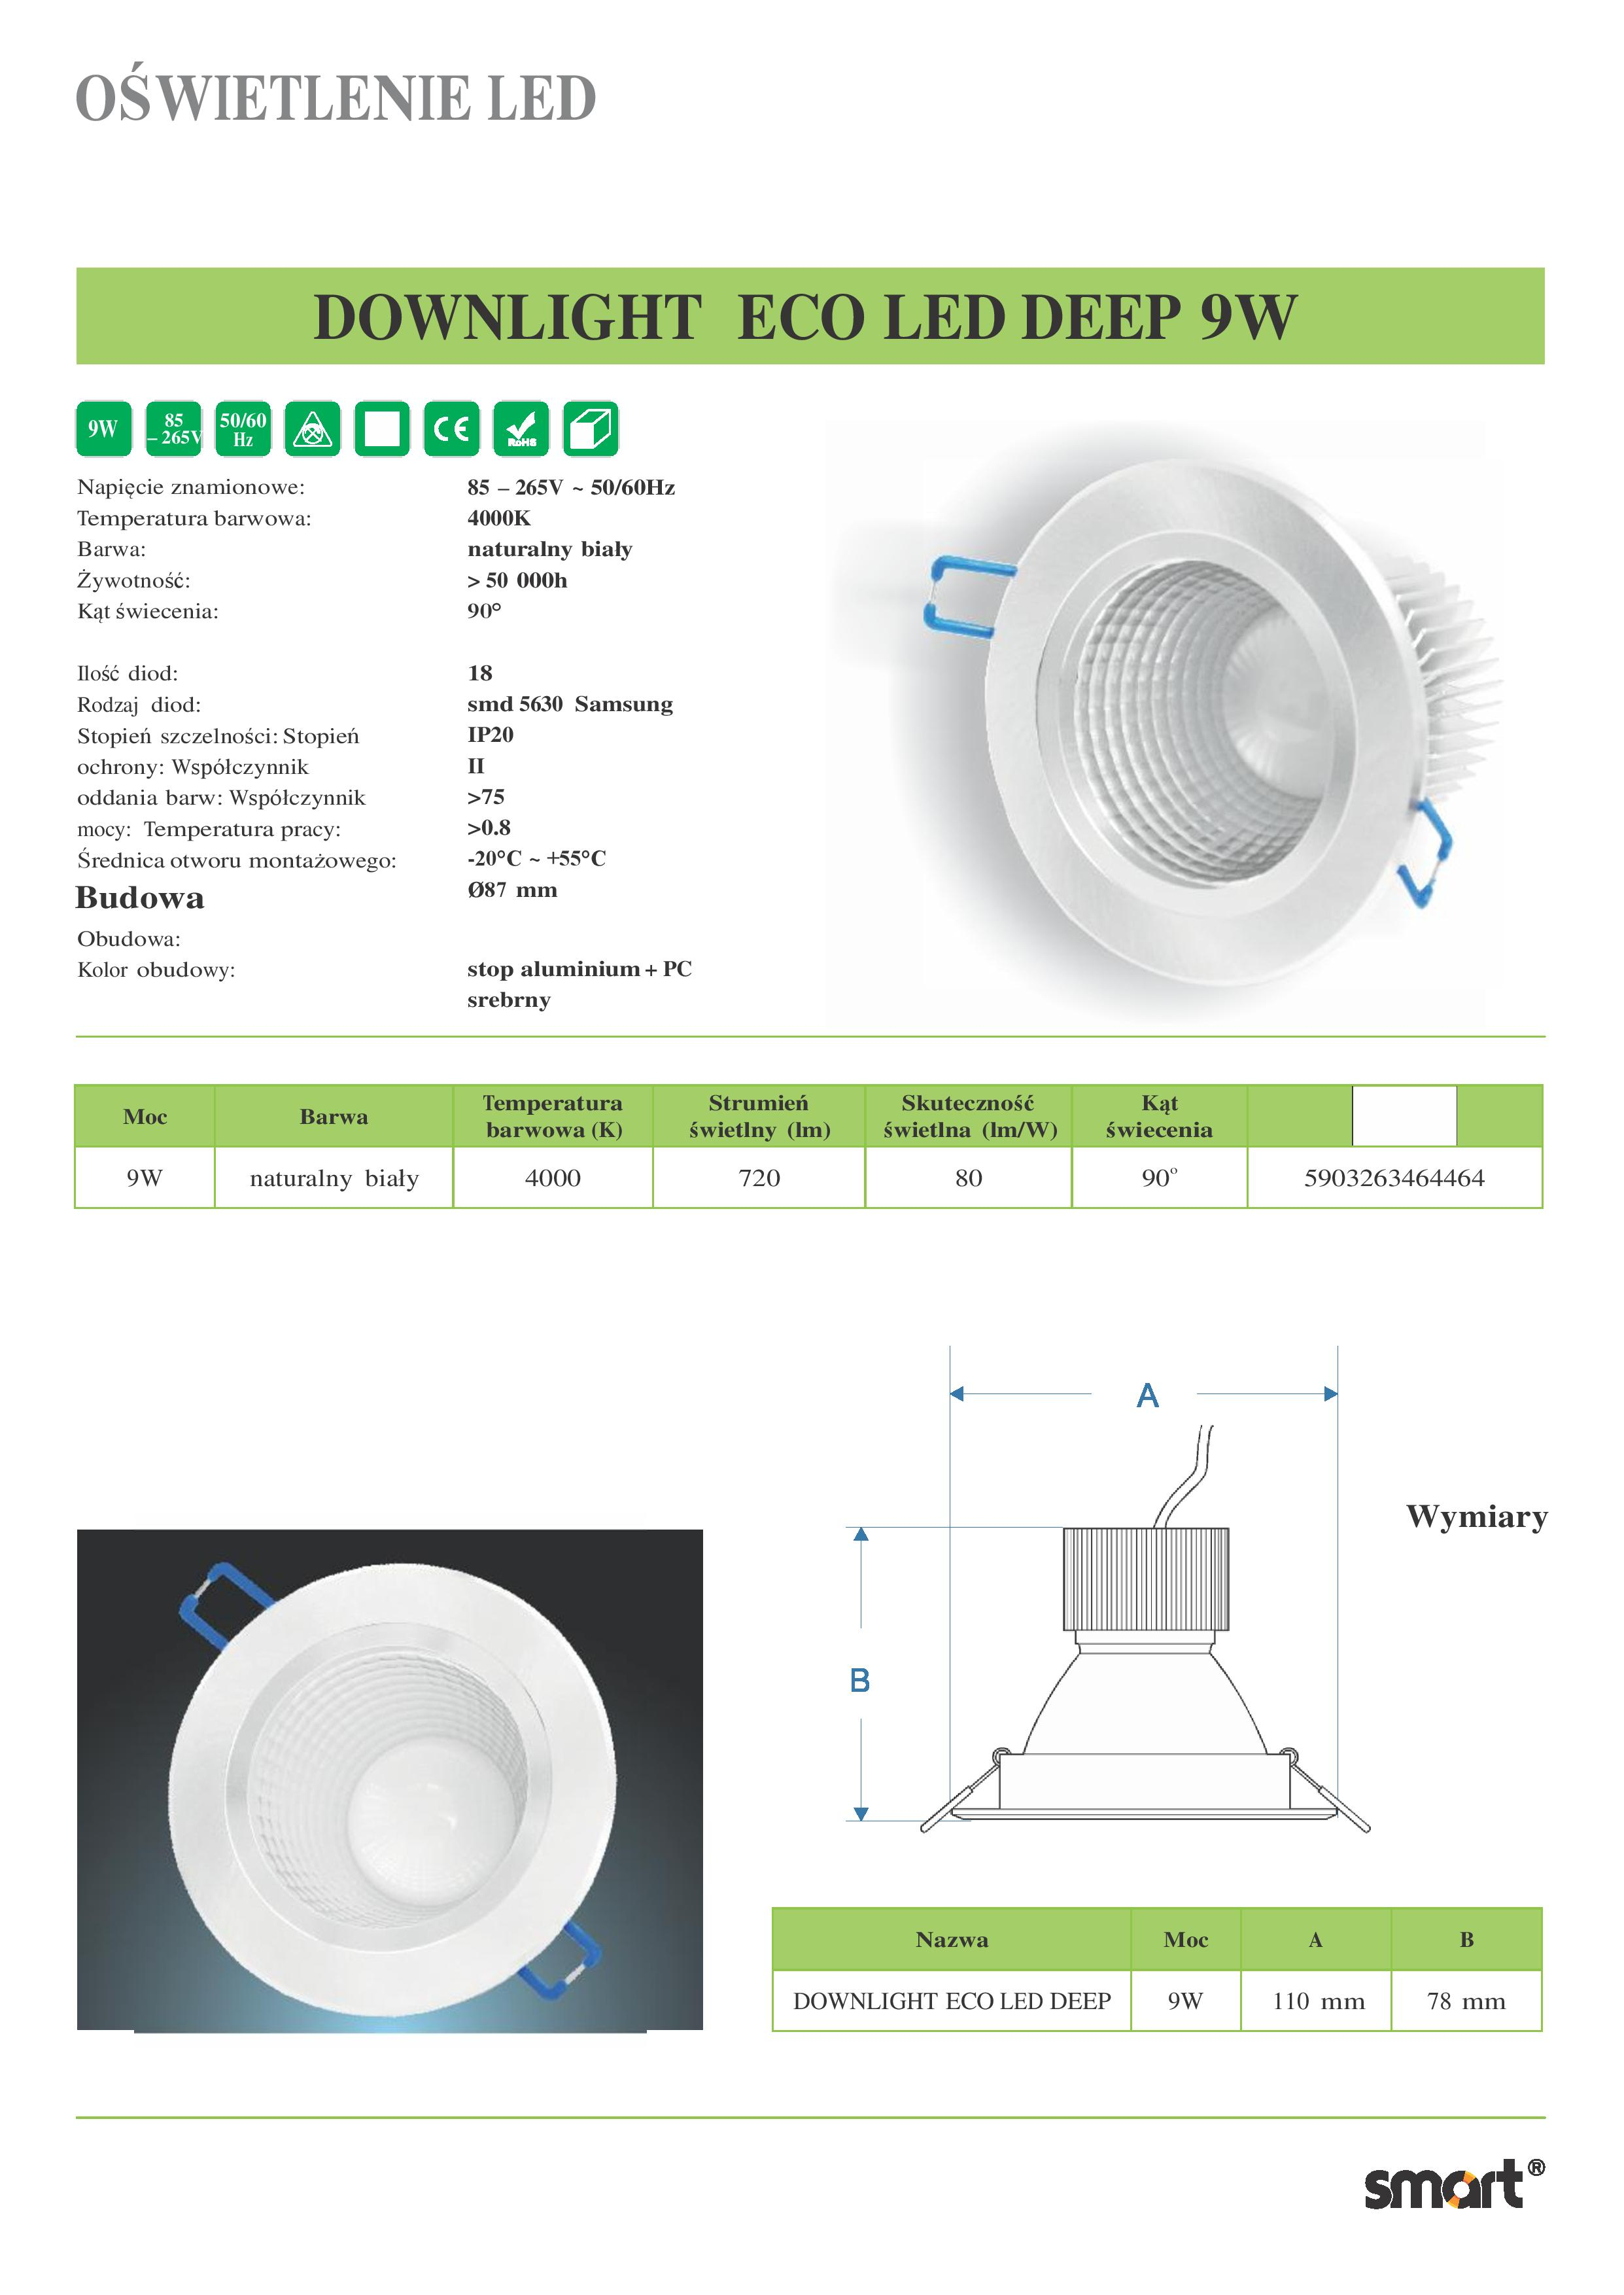 DOWNLIGHT-ECO-LED-DEEP-9W